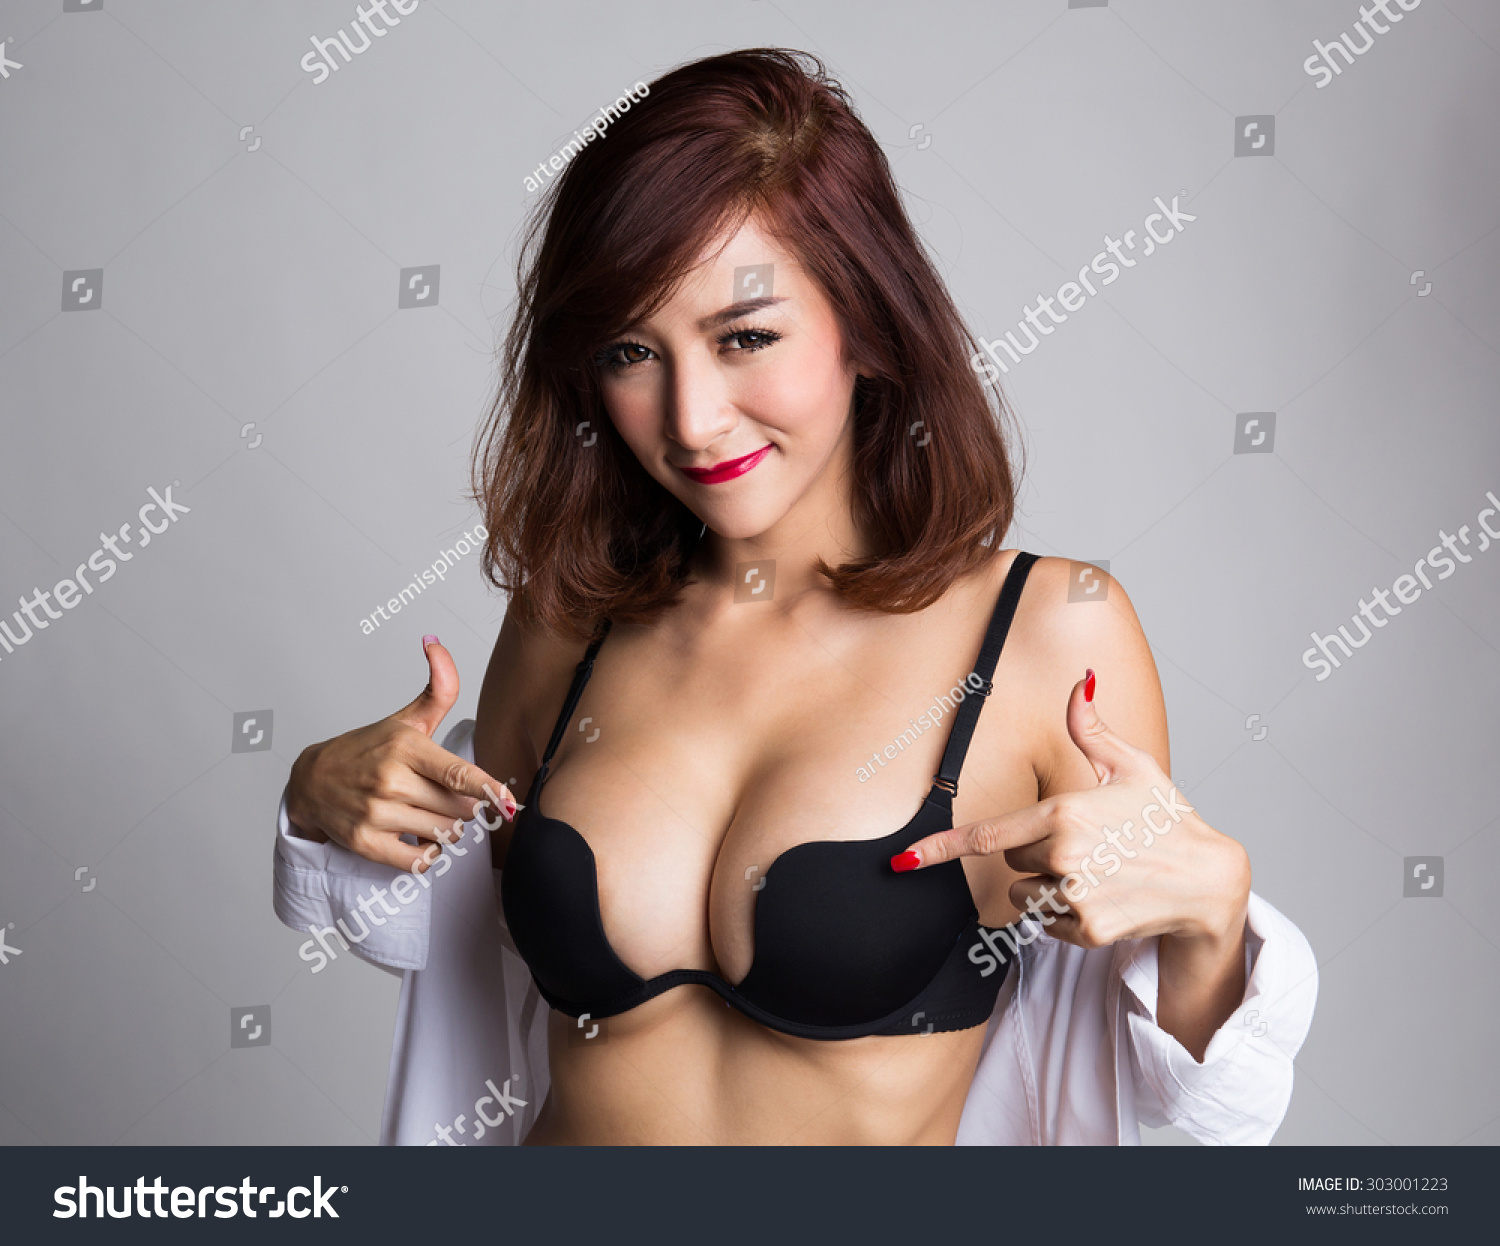 sexy asian woman showing her sexy stock photo (edit now) 303001223